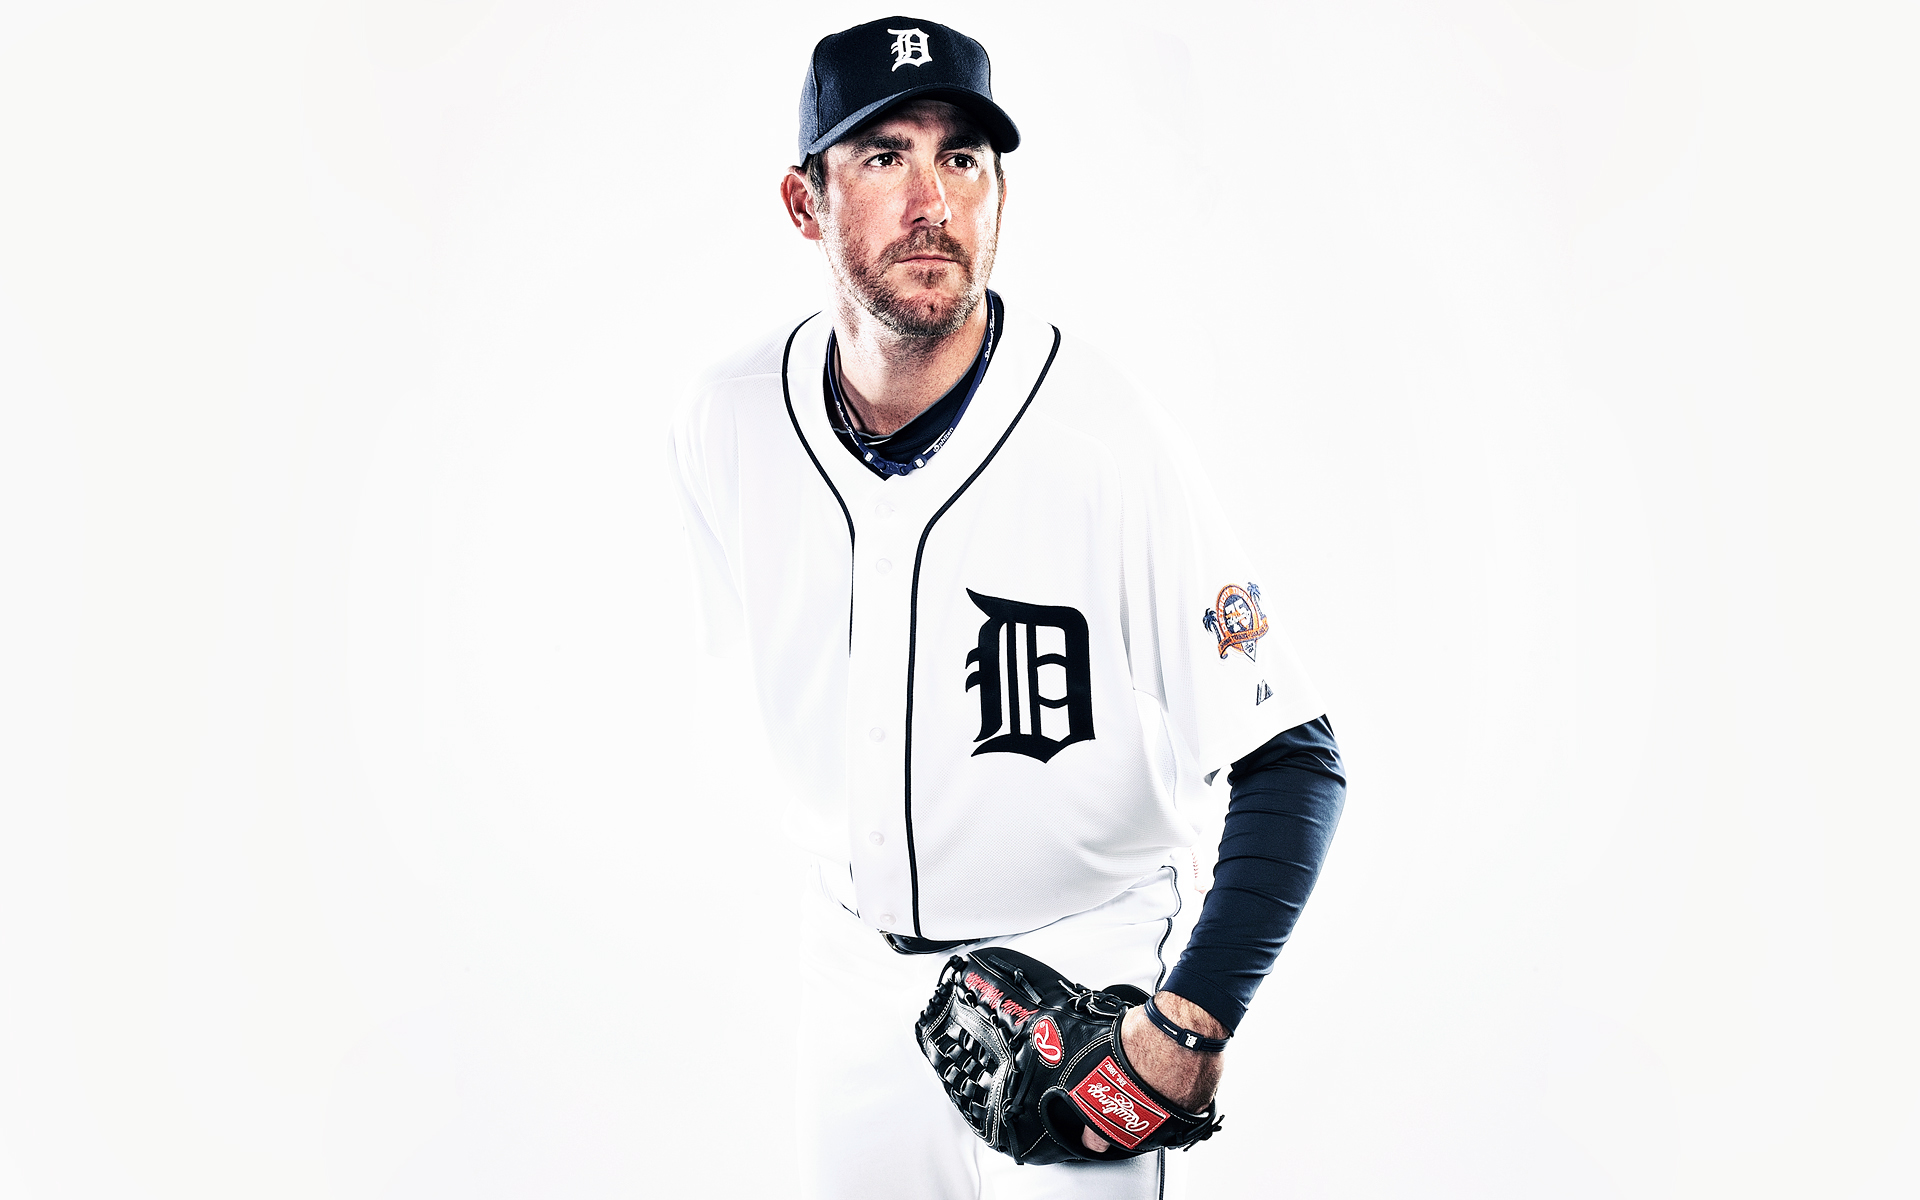 Justin Verlander photographed by Blair Bunting